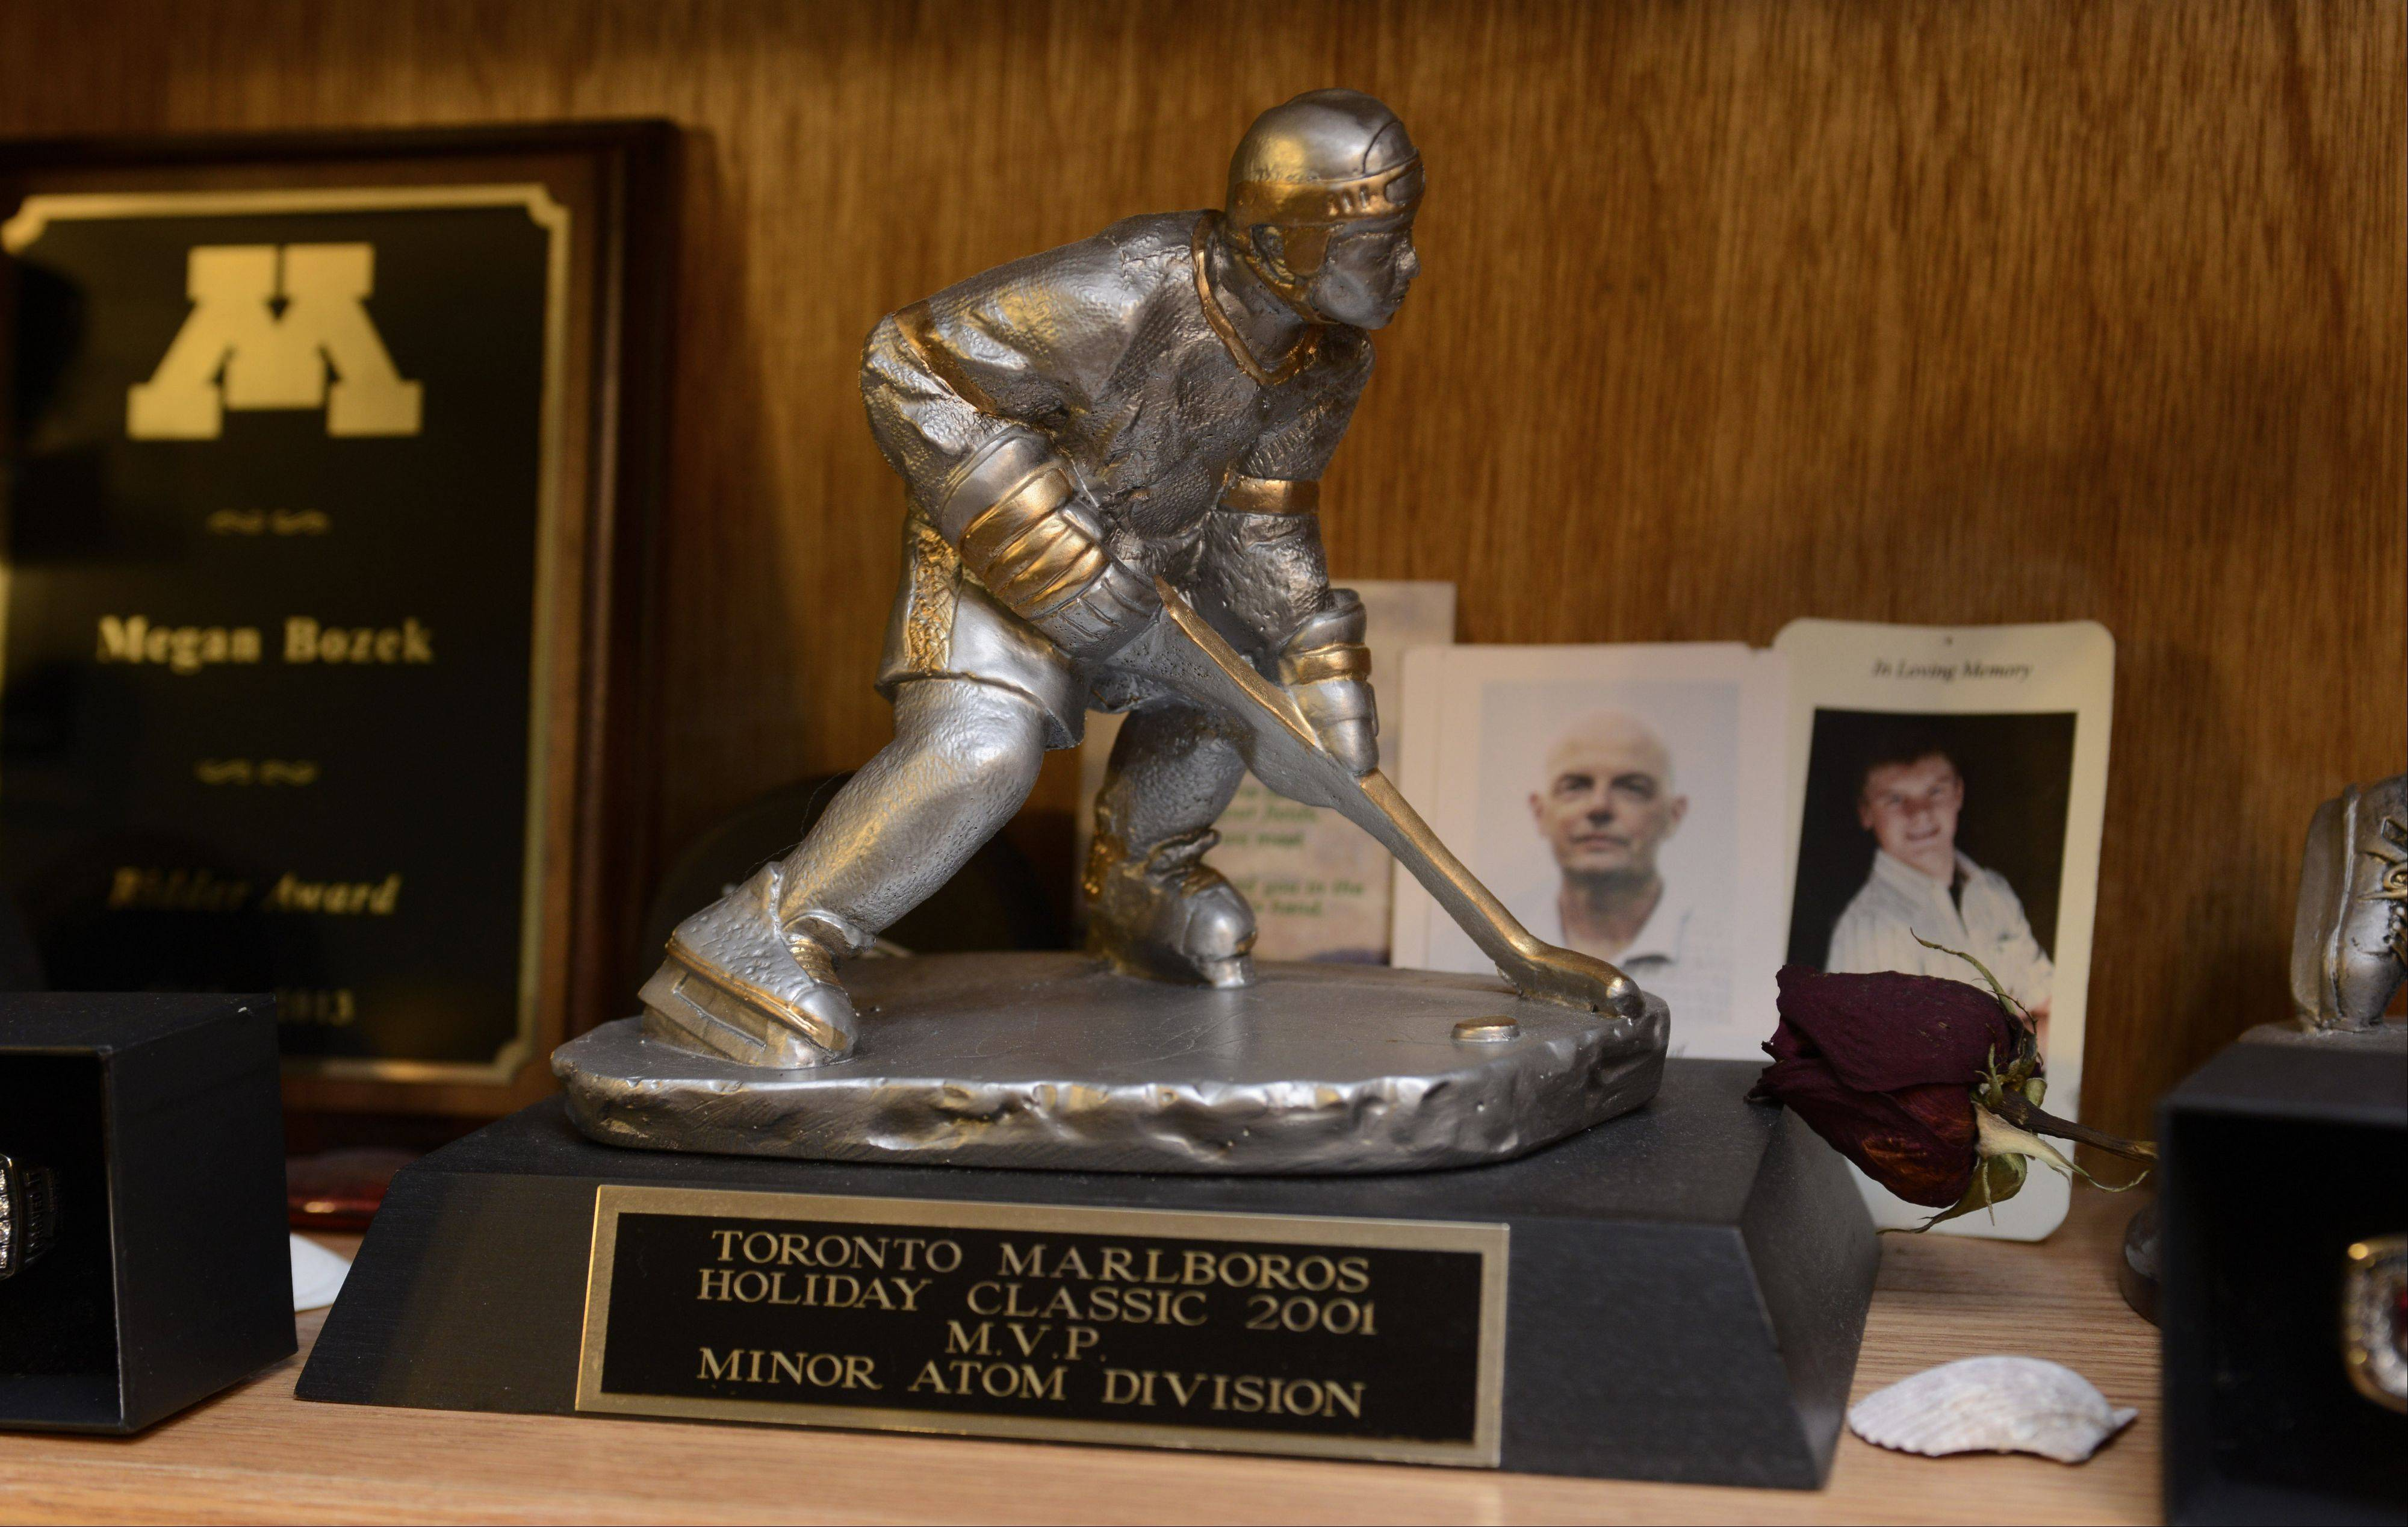 While Megan Bozek has won eight state titles in youth hockey, two NCAA championships in college and two World Championships, her parents say they are most proud of this MVP trophy she earned while playing in a Toronto tournament on an otherwise all-boys team at age 9.